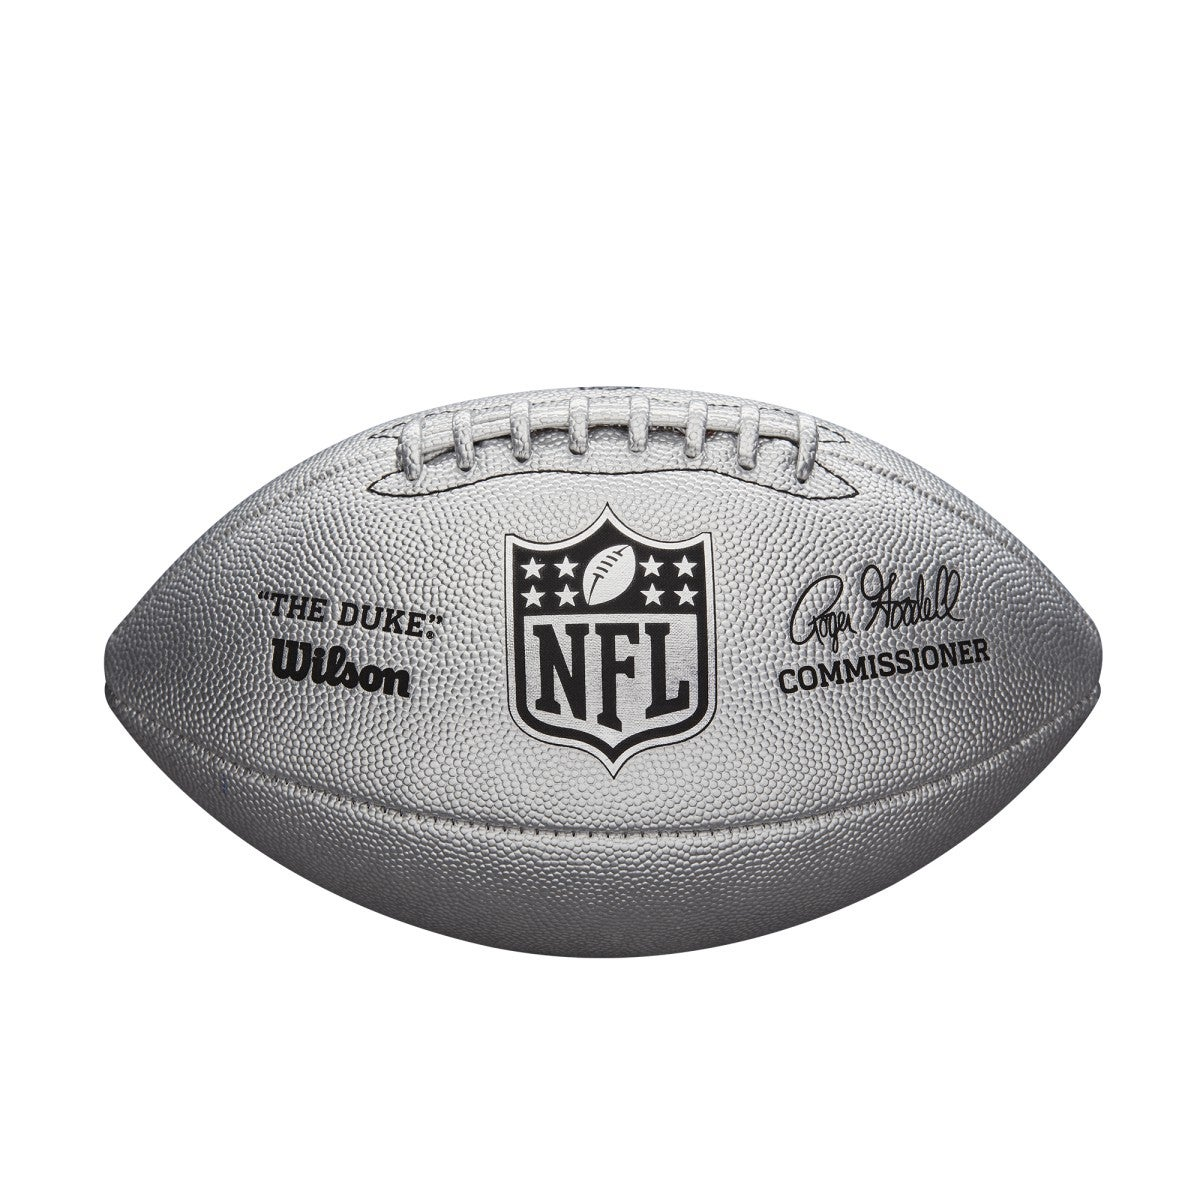 NFL The Duke Metallic Edition - Silver